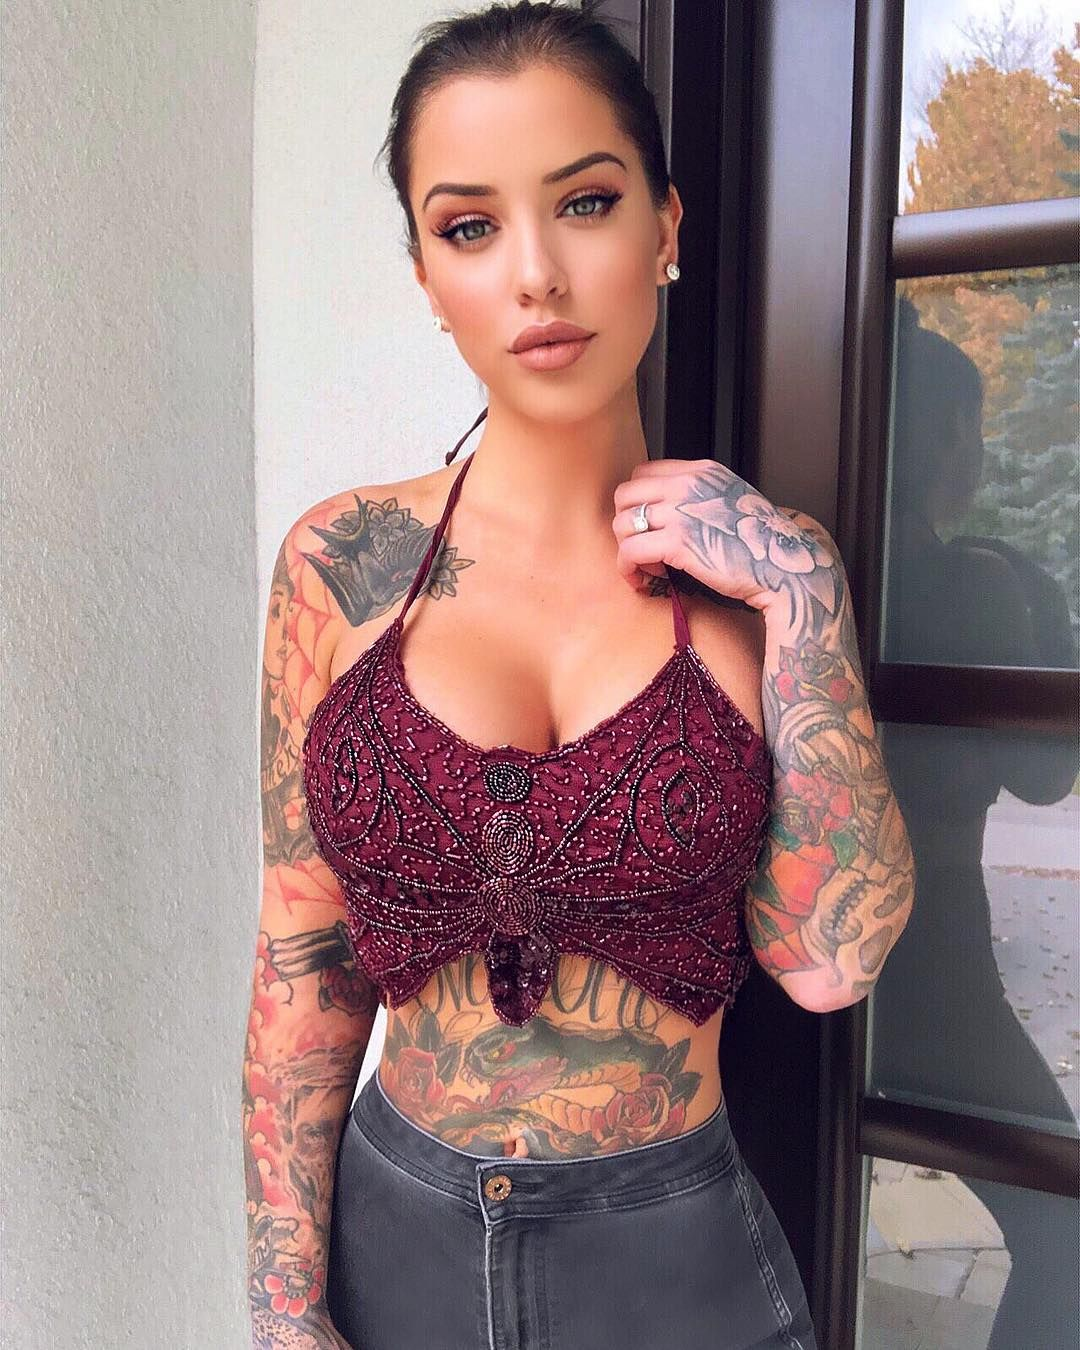 "fe05c0f123b Laurence Bédard on Instagram: ""Top from @fashionnova"" 